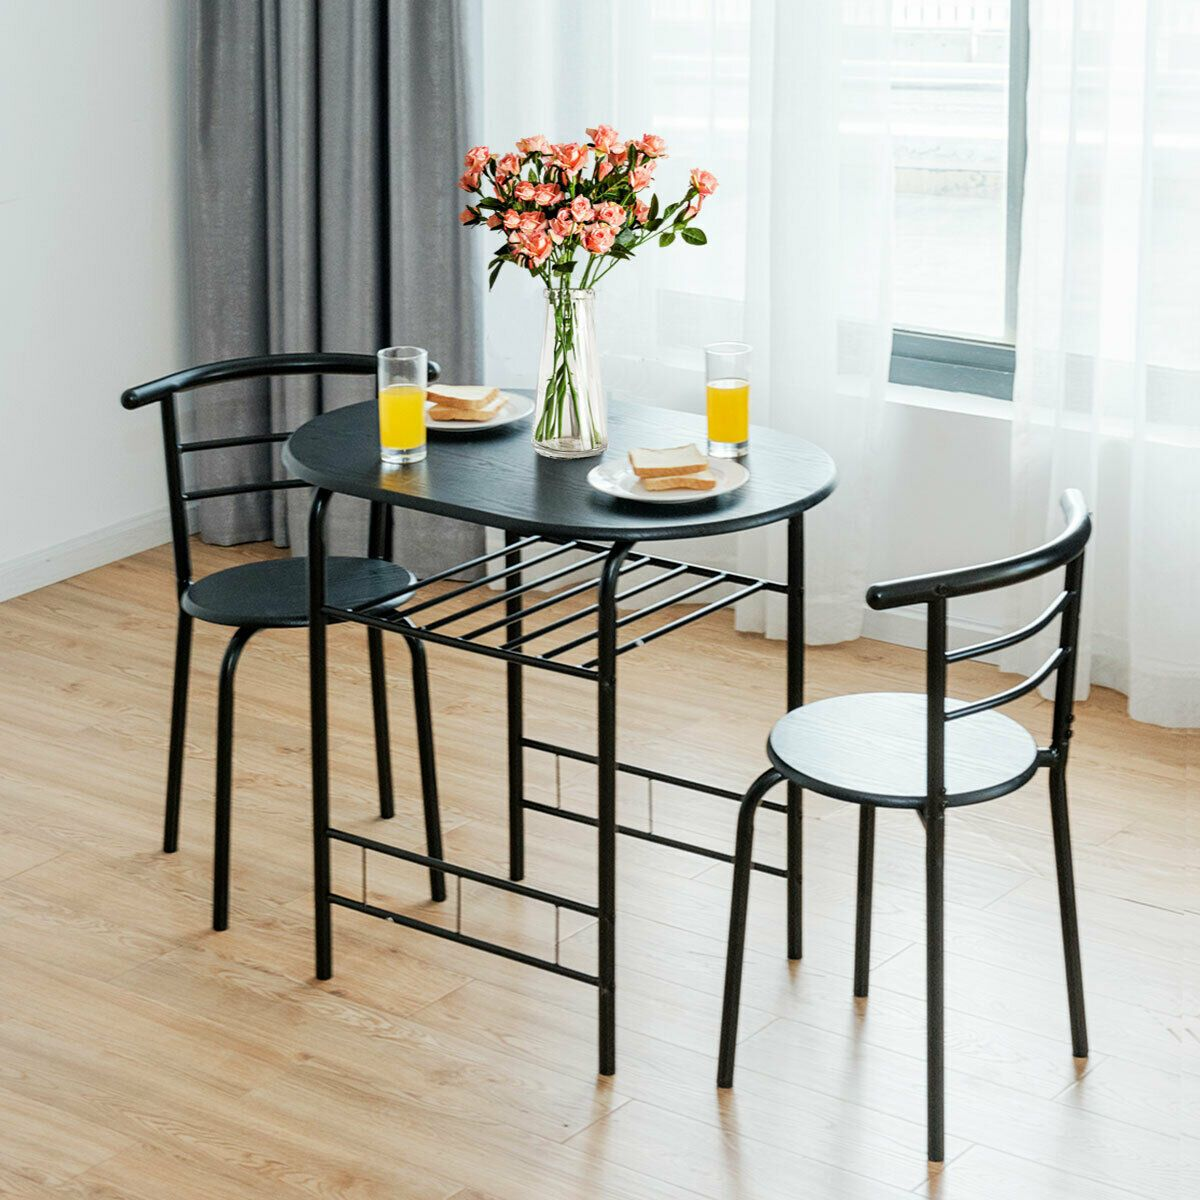 3 Pcs Home Kitchen Bistro Pub Dining Table 2 Chairs Set In 2020 Dining Room Sets 3 Piece Dining Set Bistro Table Set